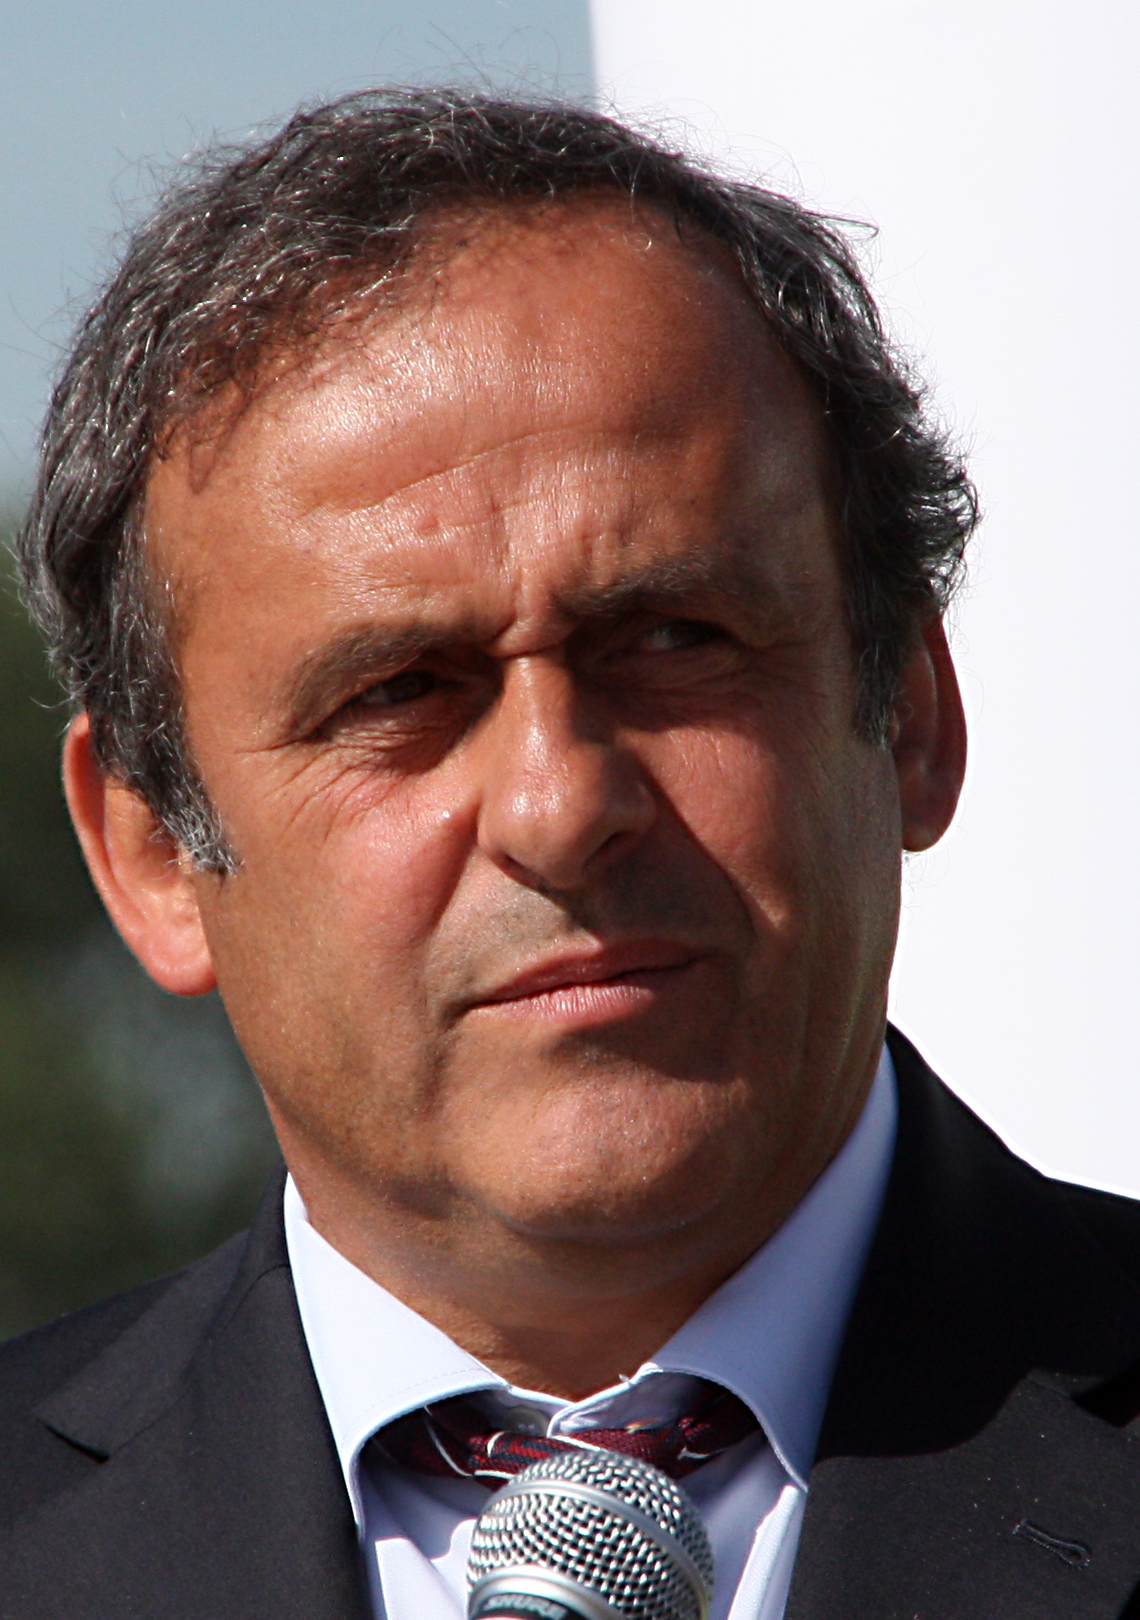 Michel-Platini-in-Wroclaw-by-Klearchos-Kapoutsis-tight-crop